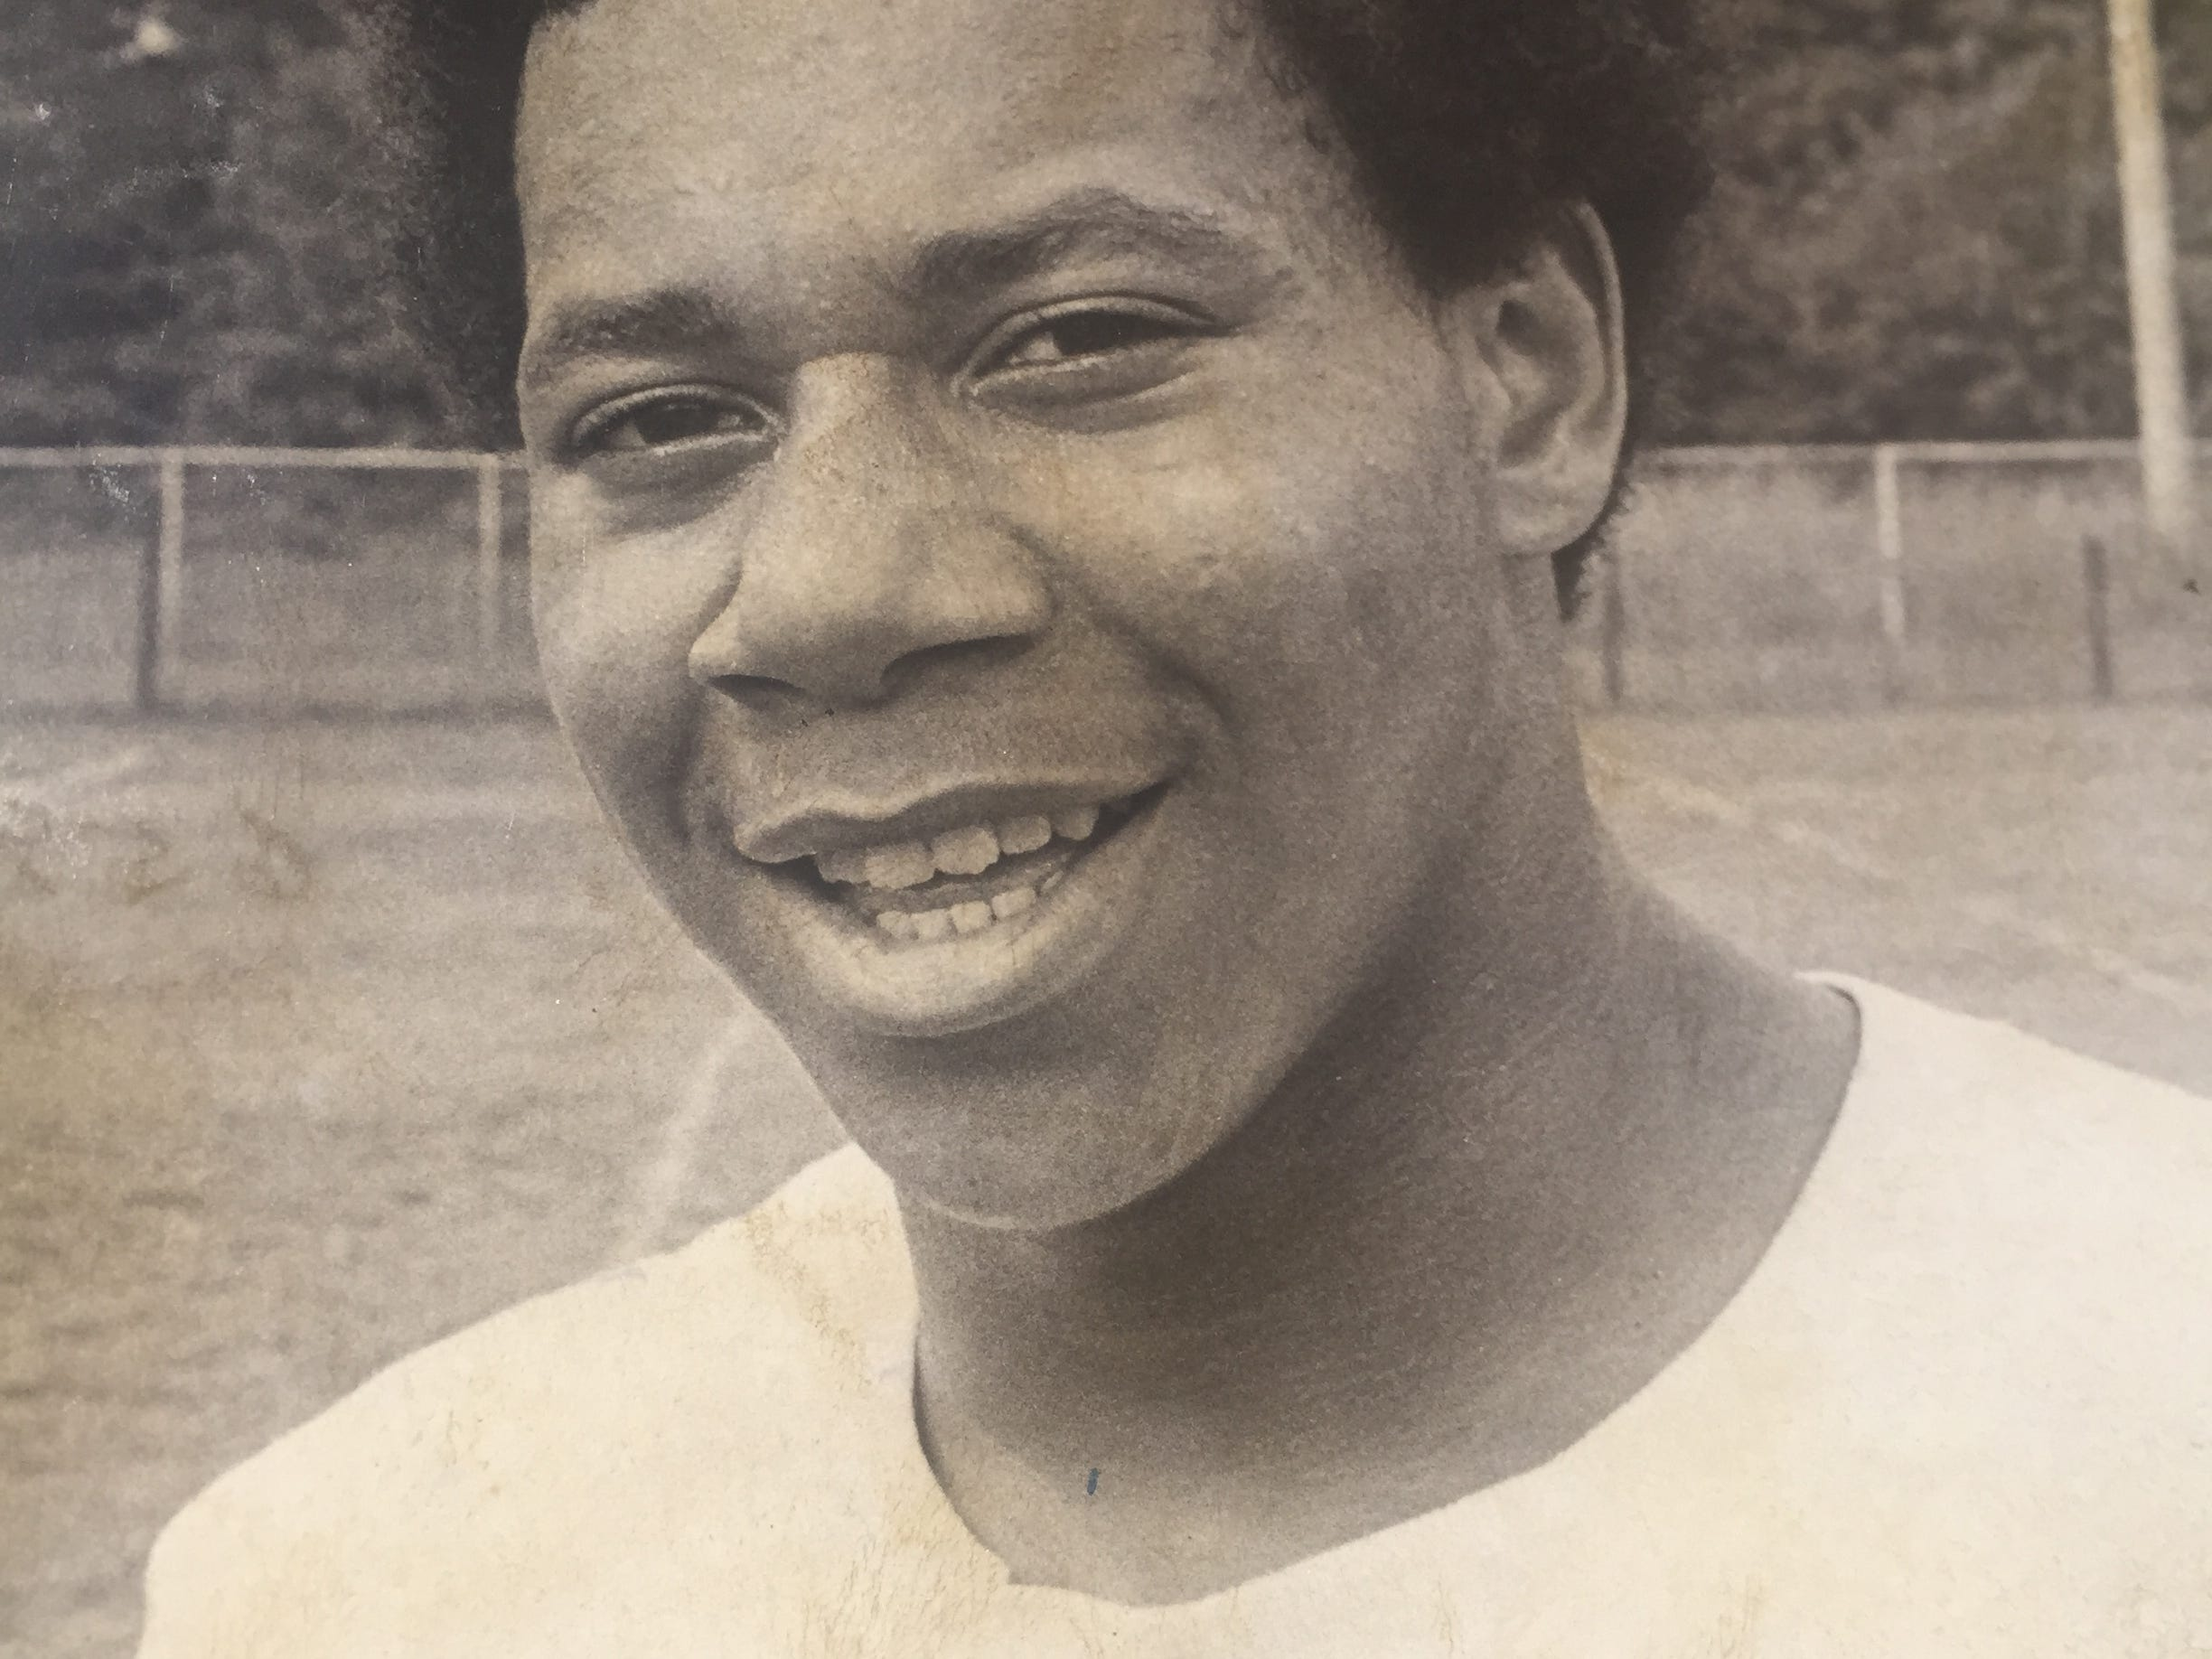 Matawan's Ken Mandeville, who ended up playing football at Syracuse, was also a great baseball player for the Huskies.